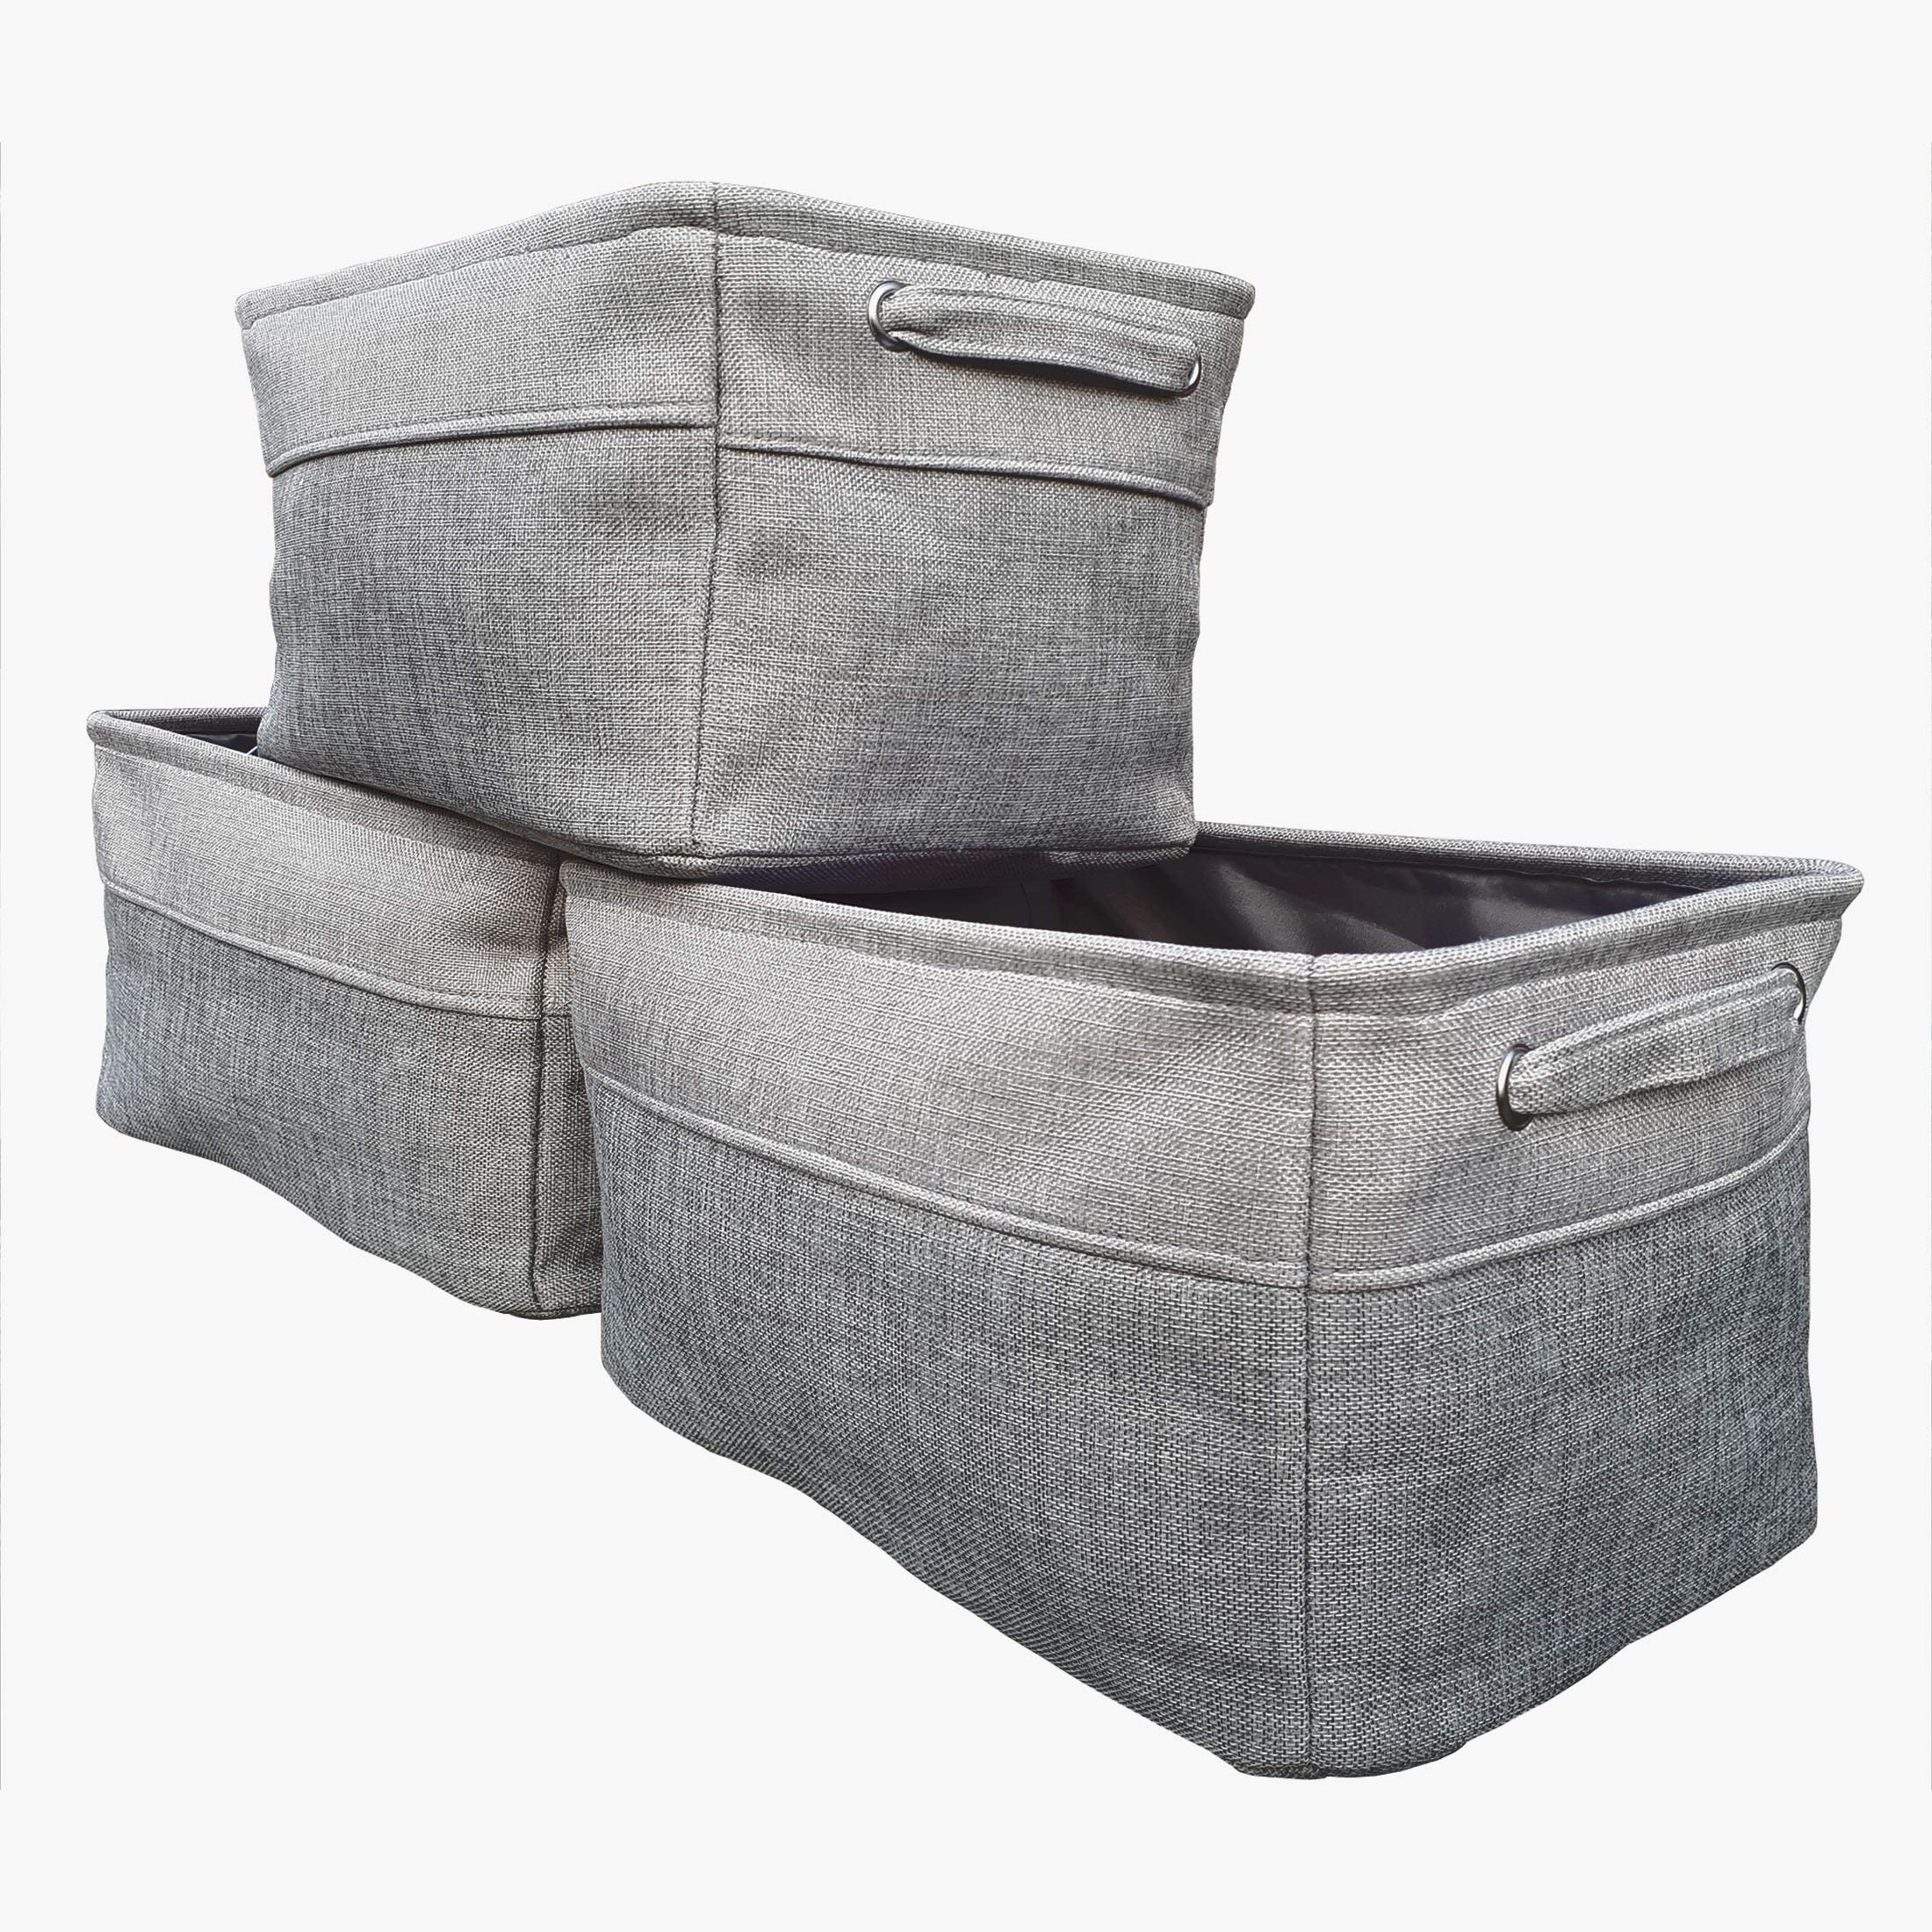 Collapsible Storage Bin Basket 3 Pack F&K home Foldable Rectangle Linen Fabric Baskets with Handles Modern Grey for Nursery Closet Bathroom Living Room Office by F&K home